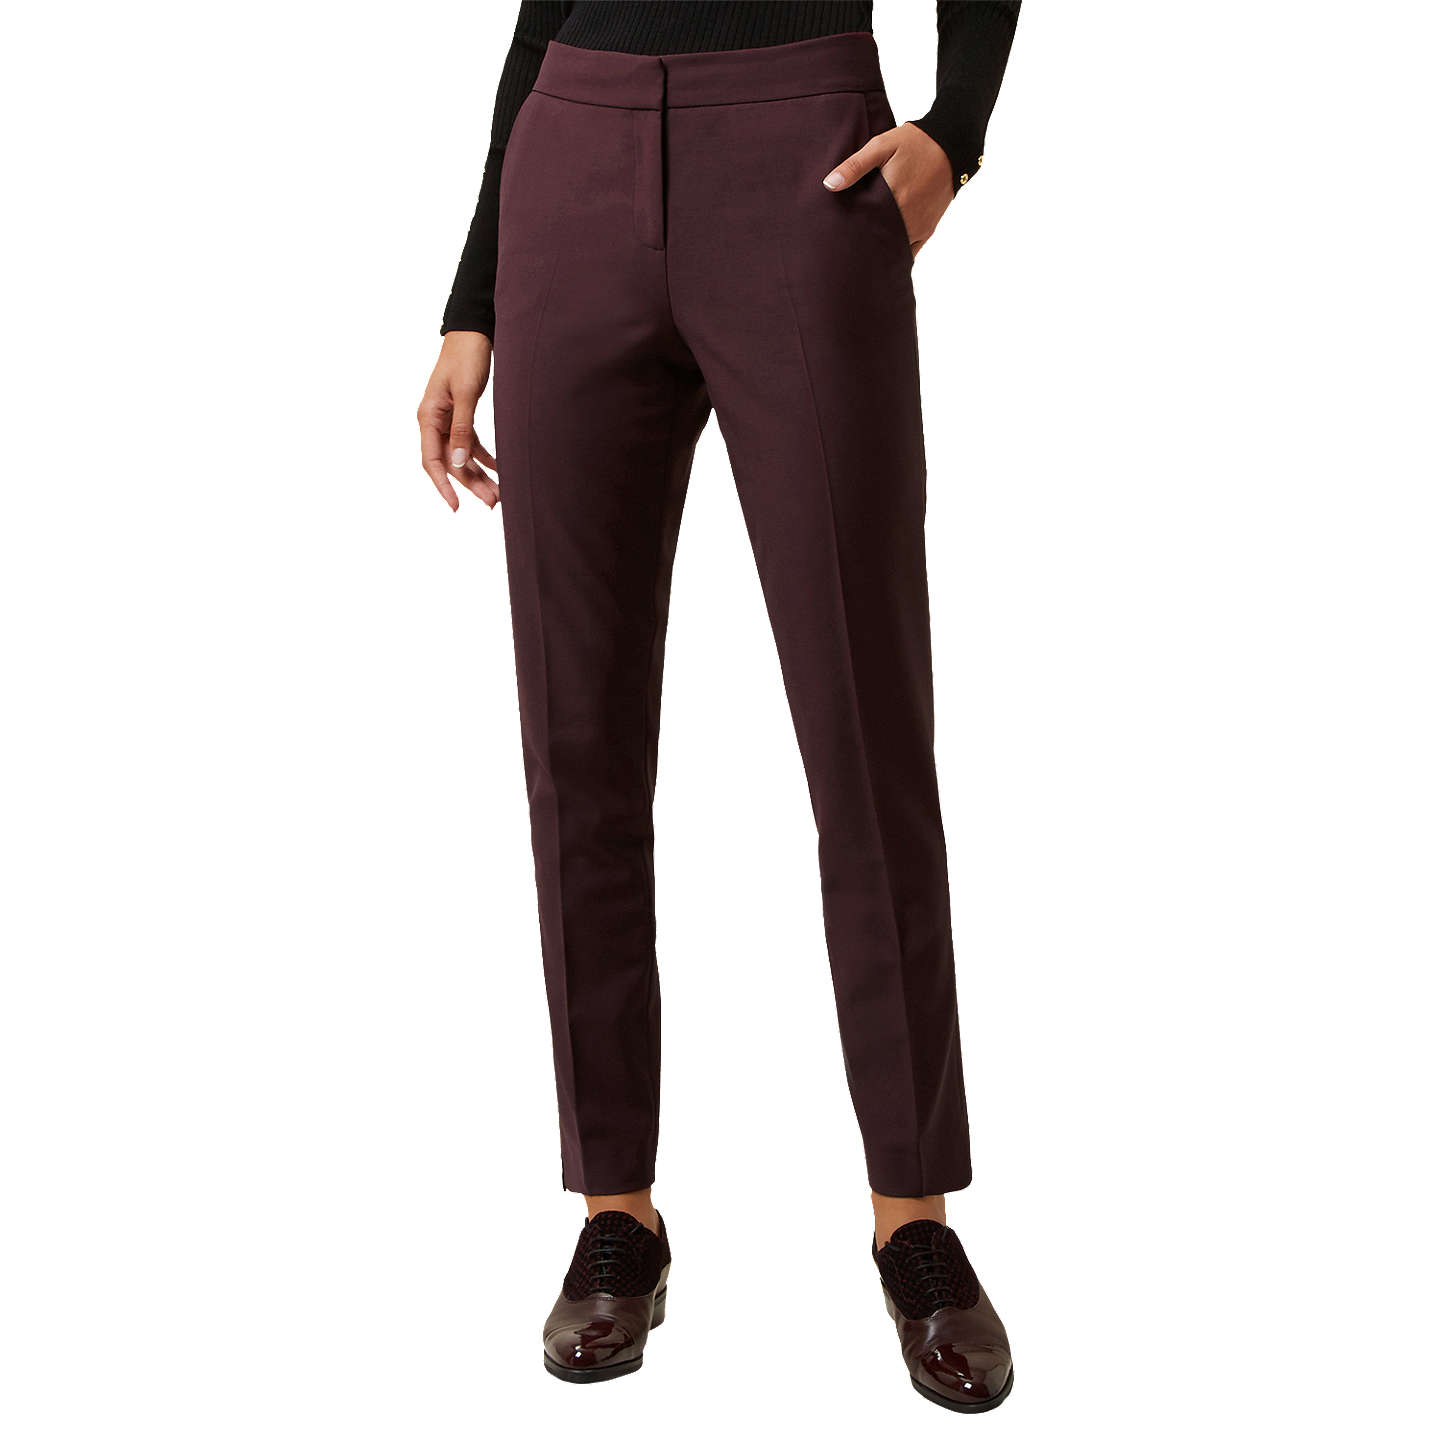 BuyHobbs Ayla Tapered Trousers, Dark Merlot, 6 Online at johnlewis.com